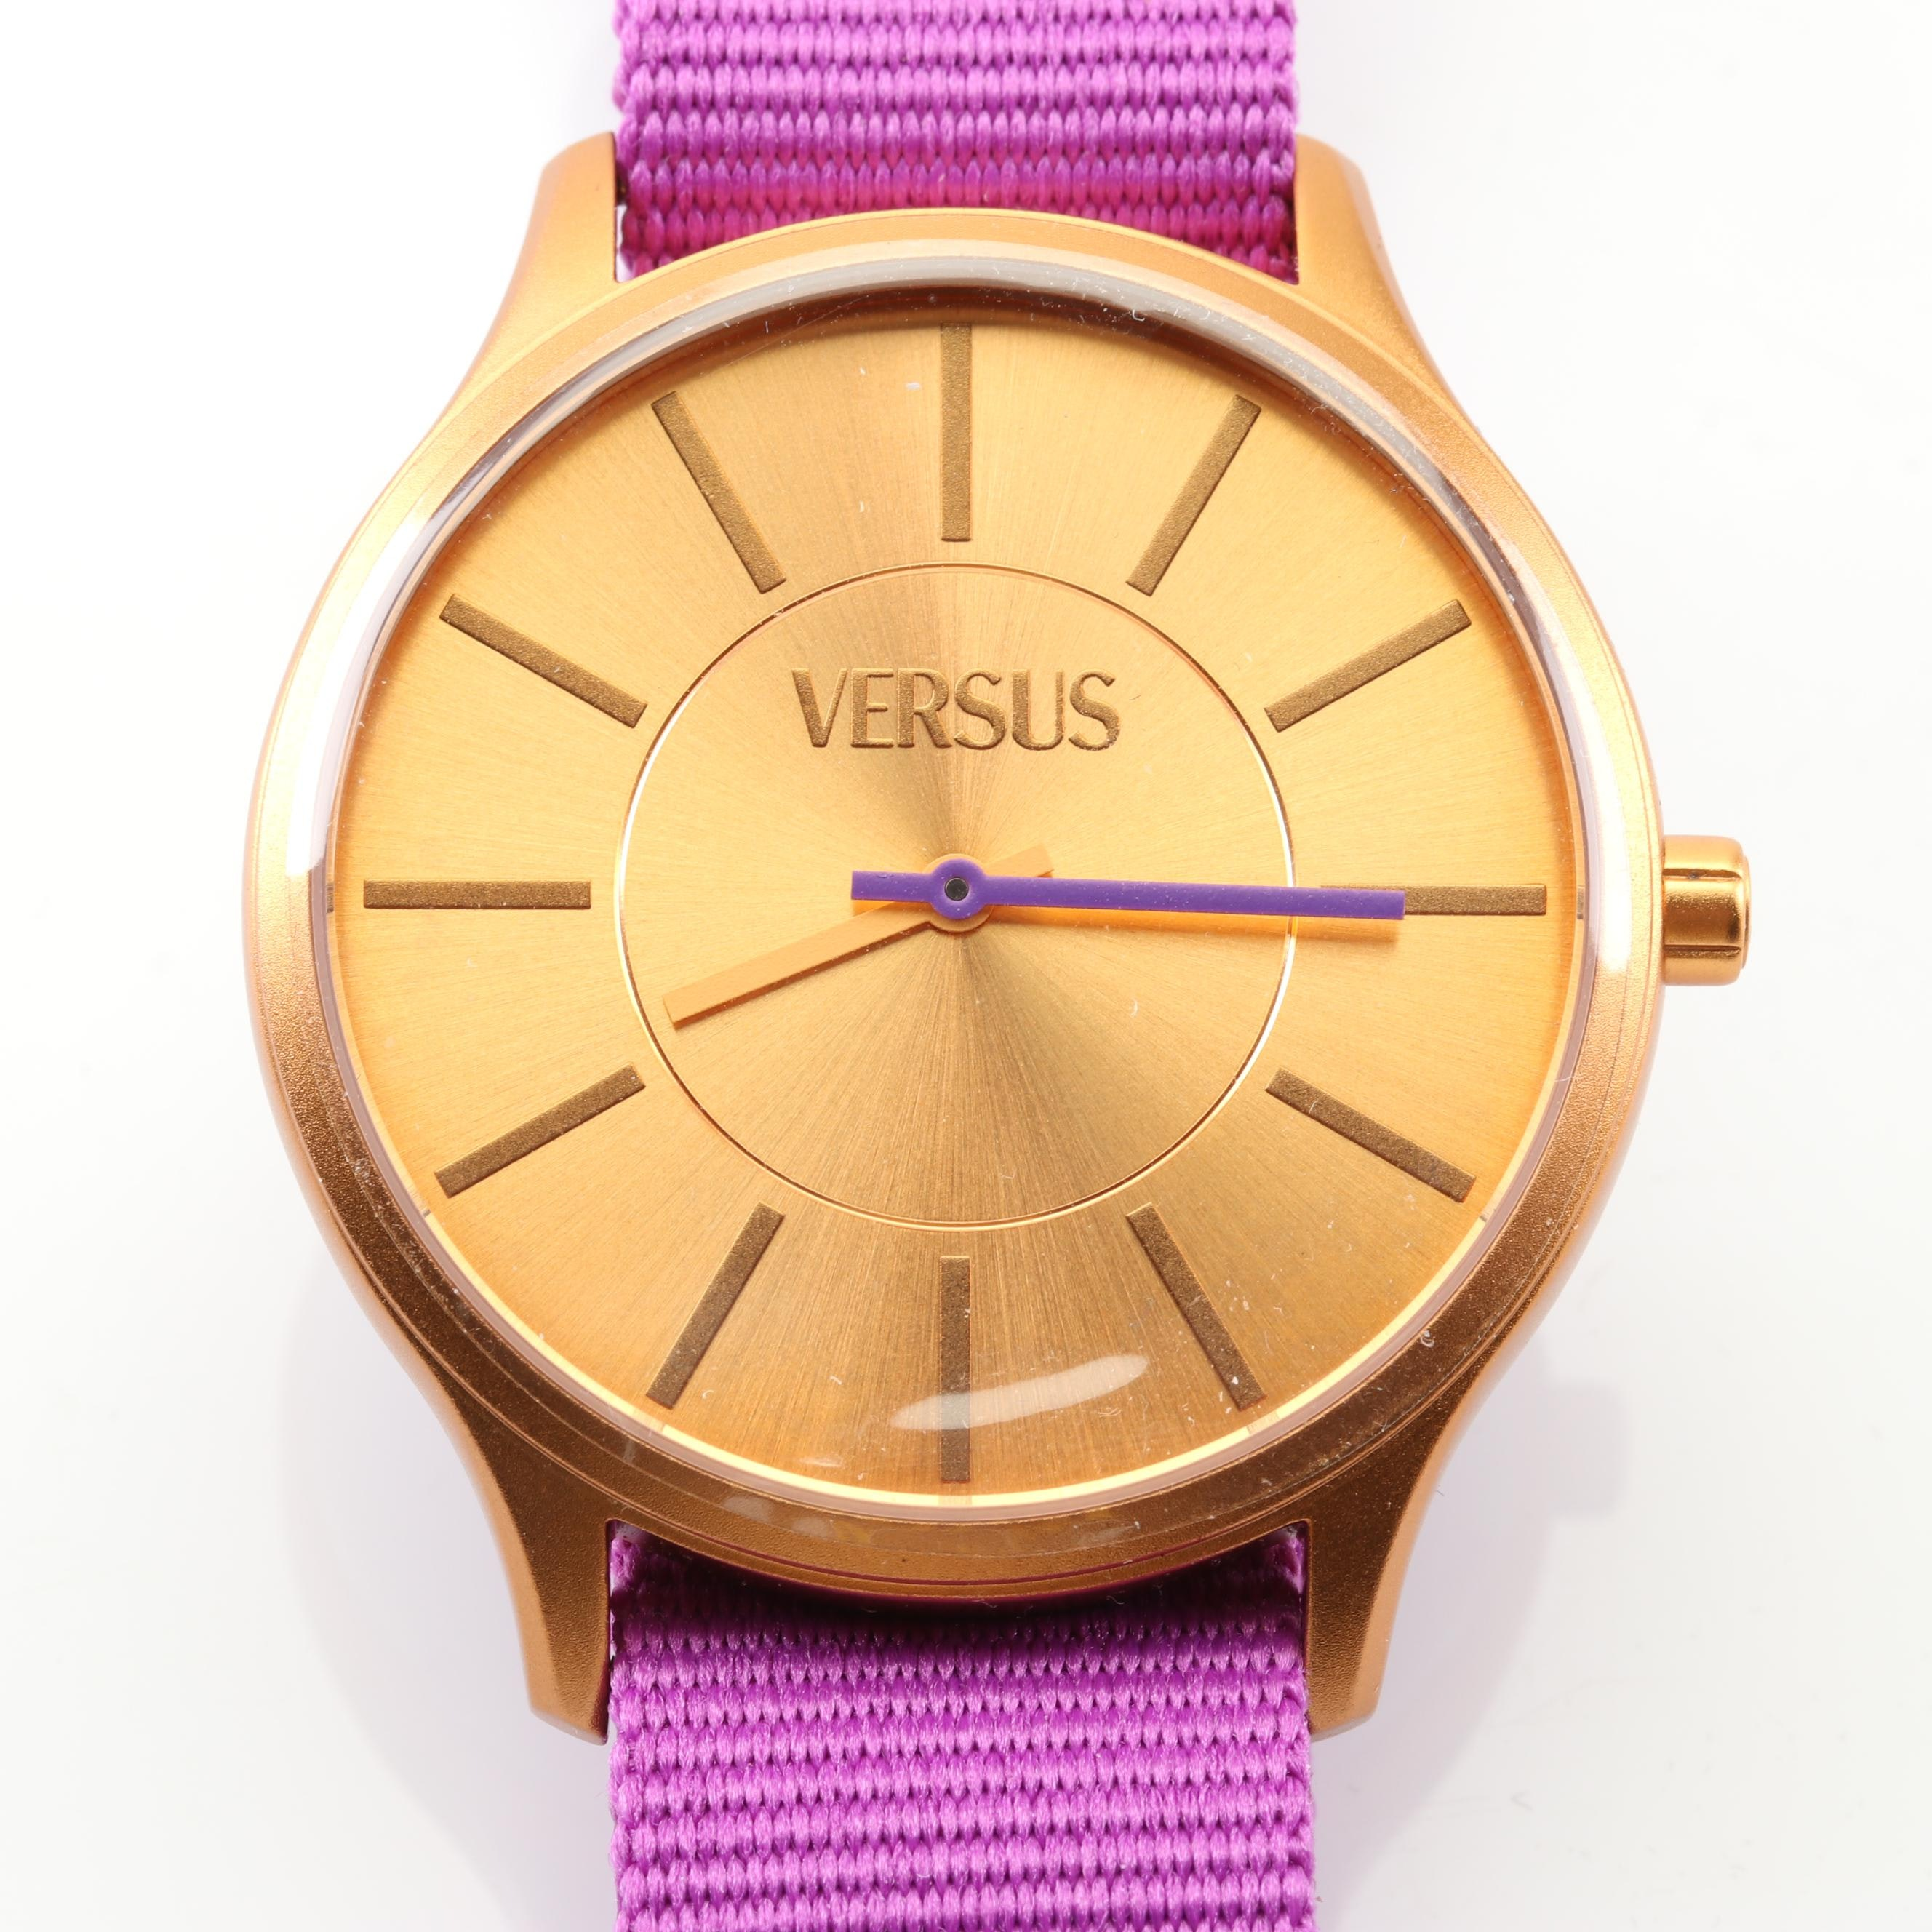 Versus by Versace Gold Tone Wristwatch